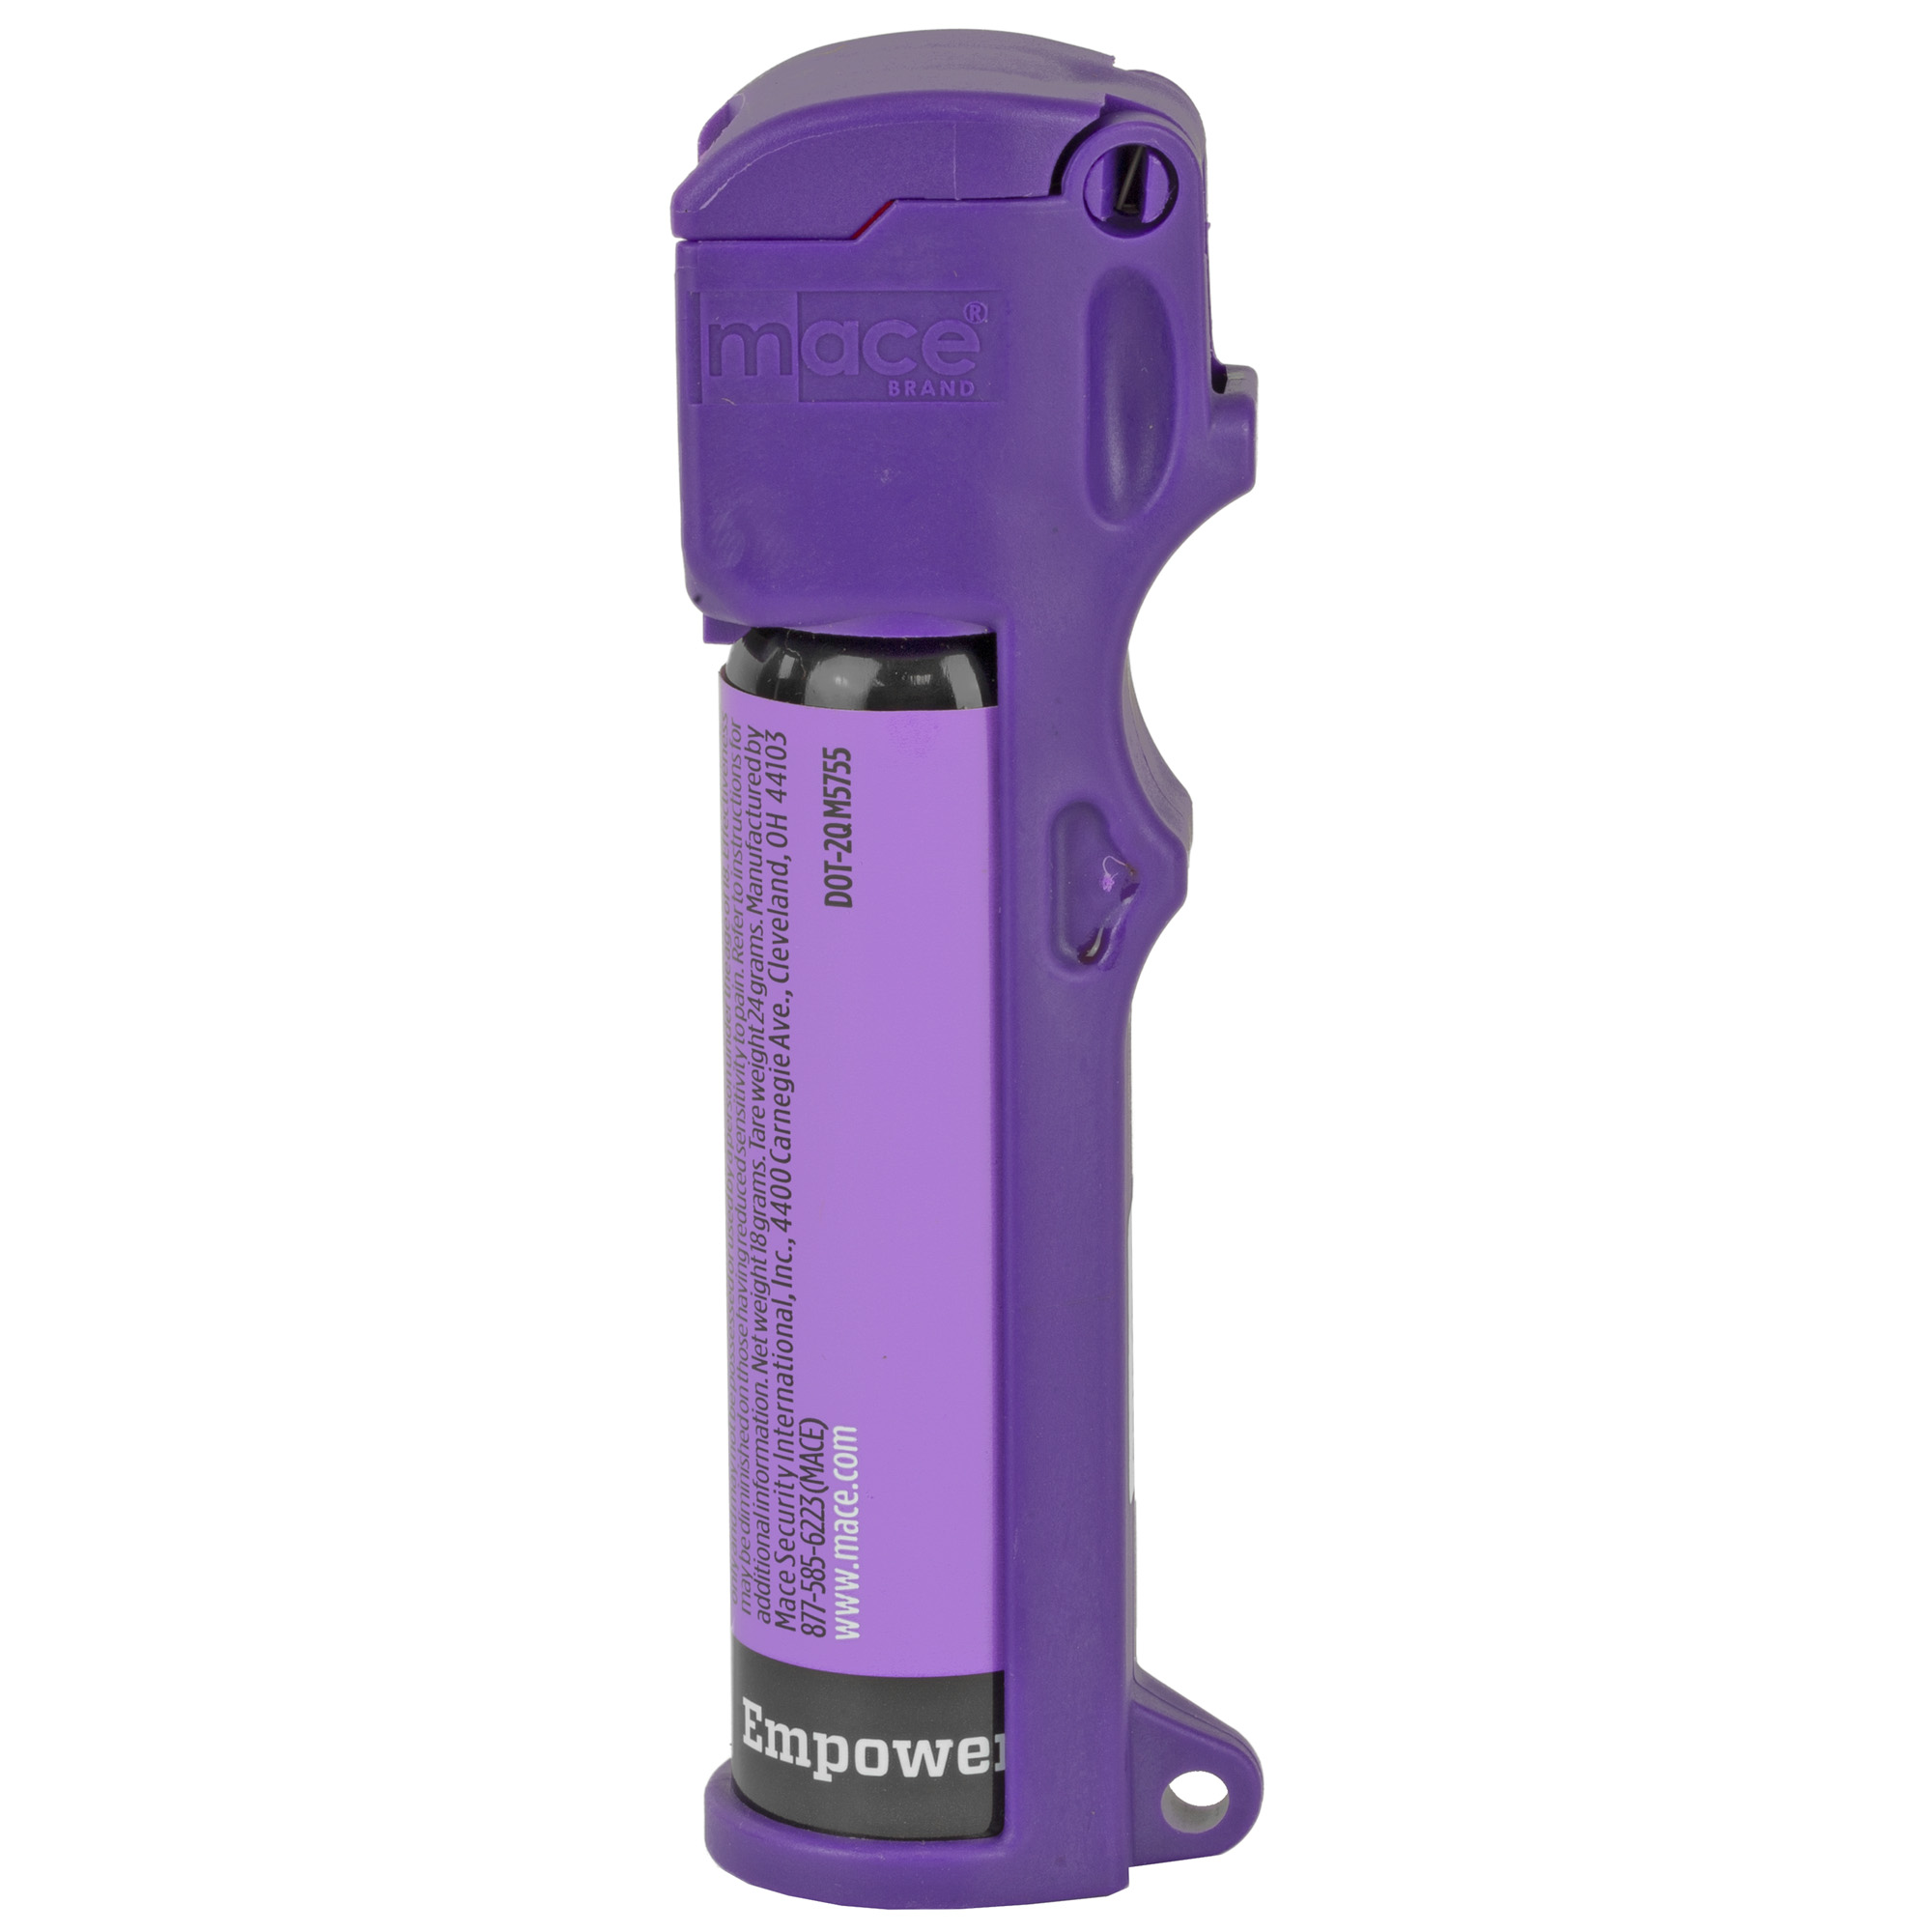 Msi Empower Personal Spray Purp